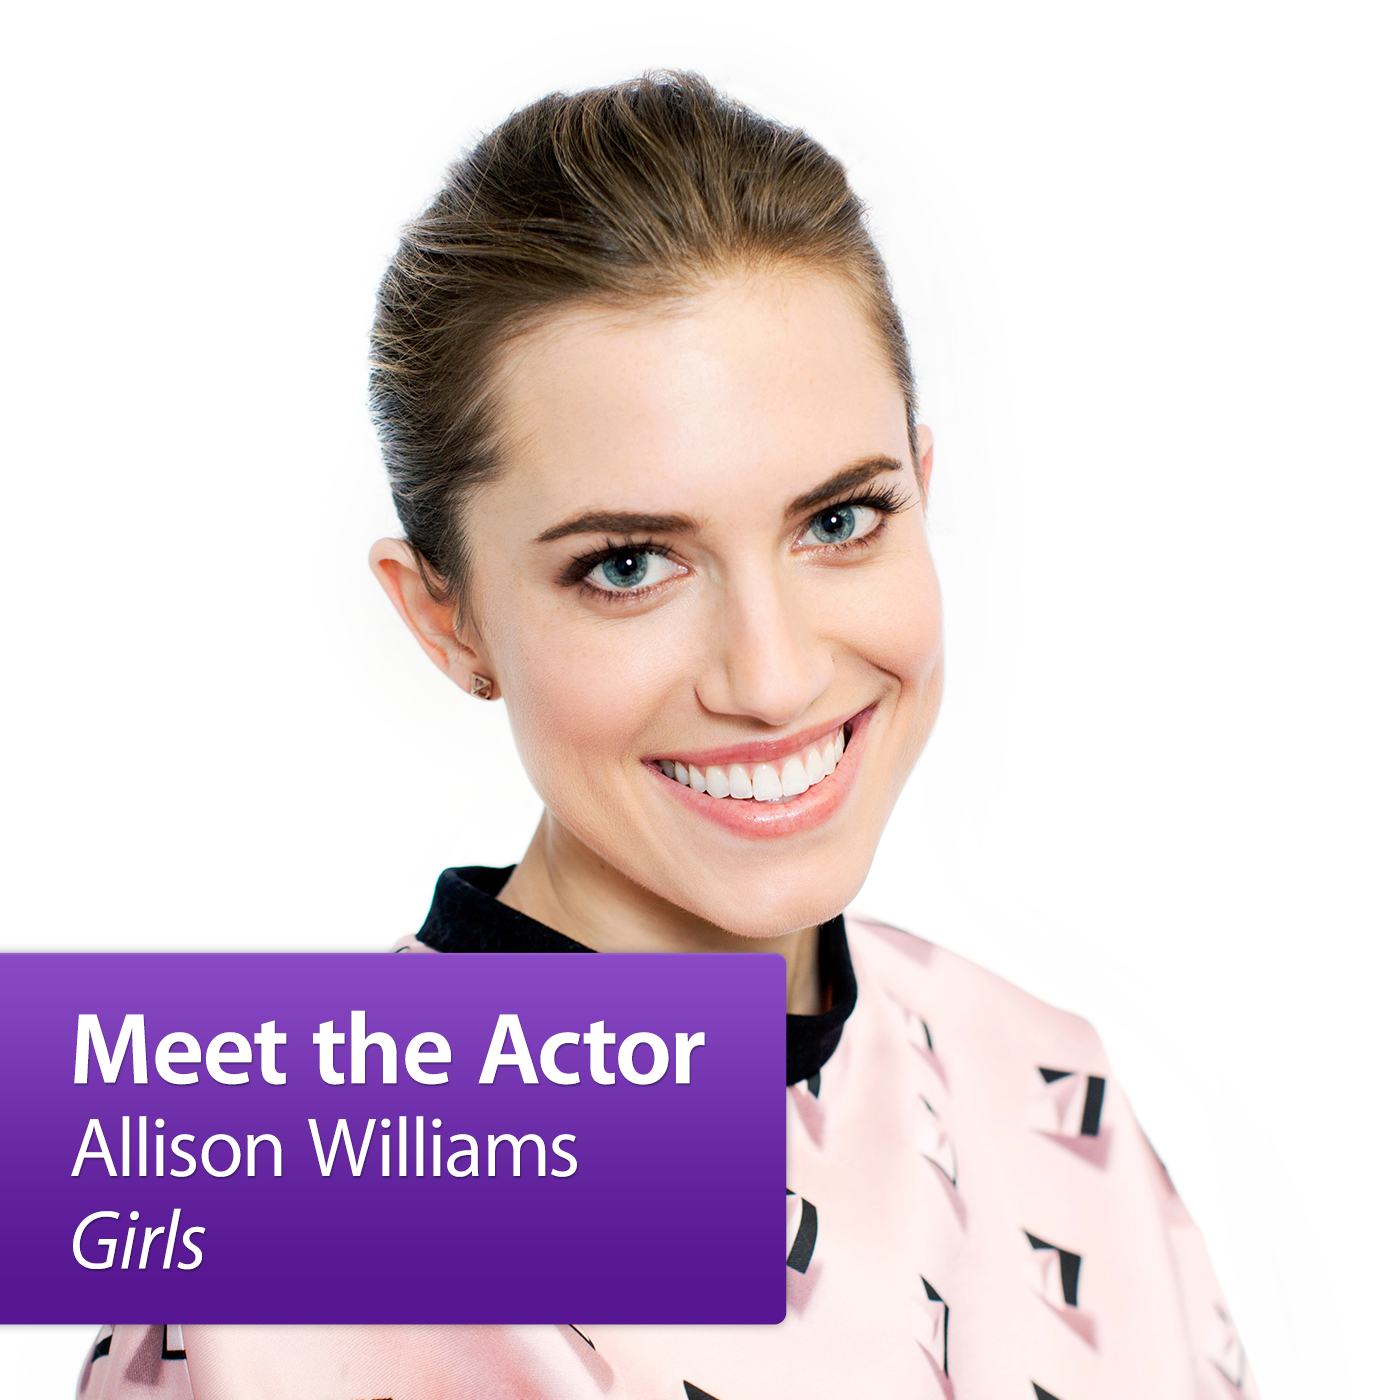 Allison Williams: Meet the Actor